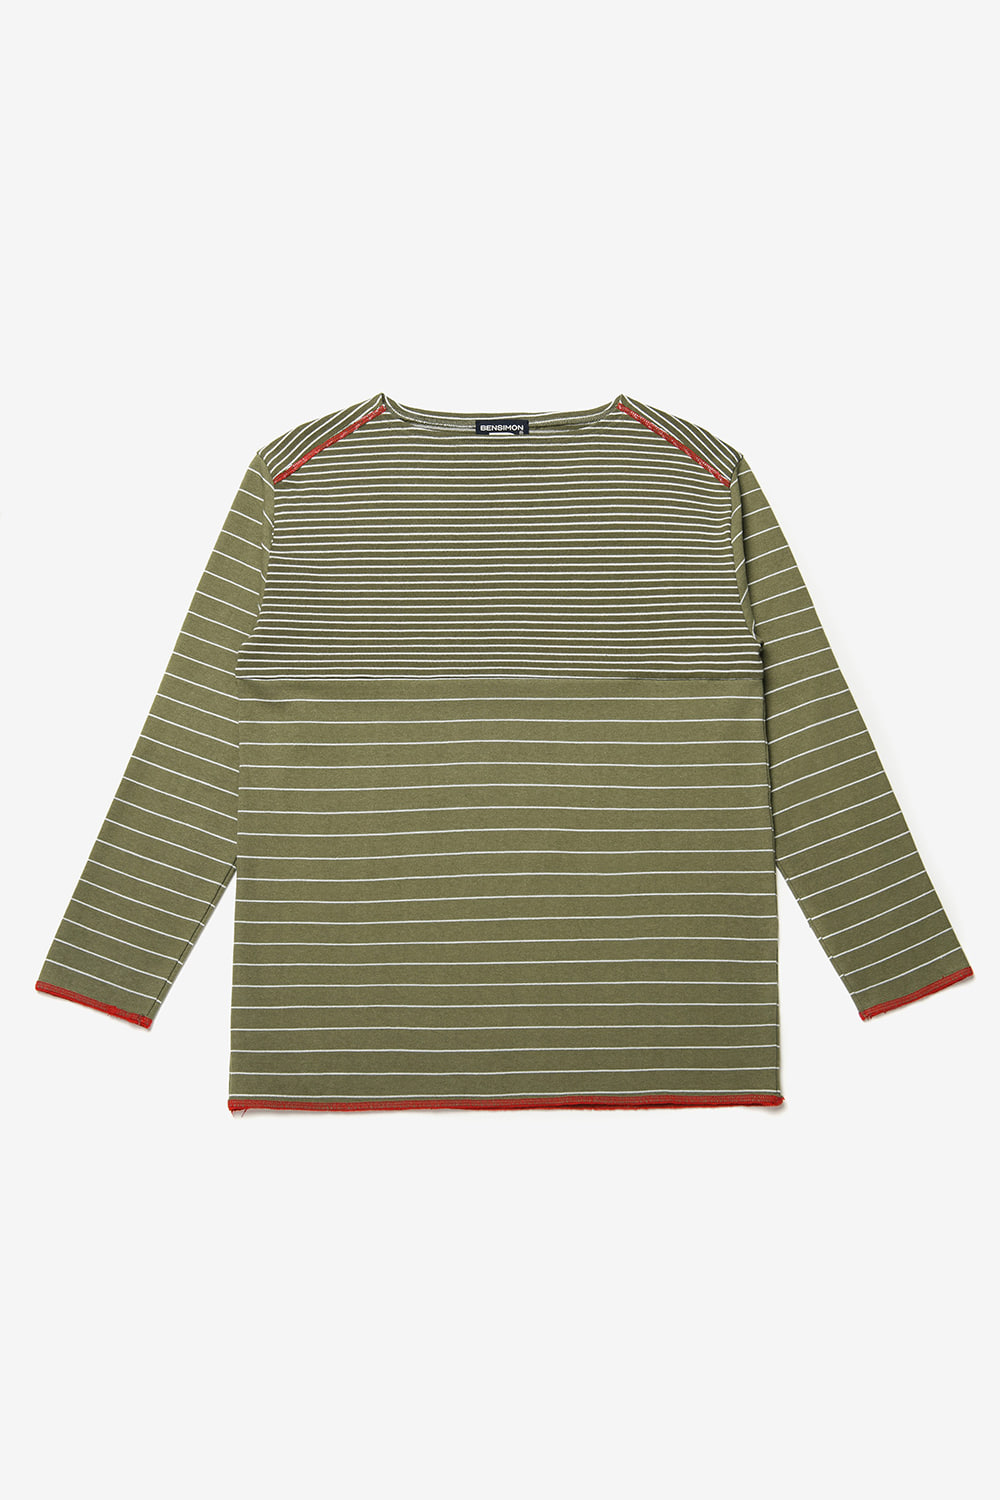 [벤시몽 X 비아플레인] Brush Stripe Long Sleeve_Khaki BS0STL211KH00F